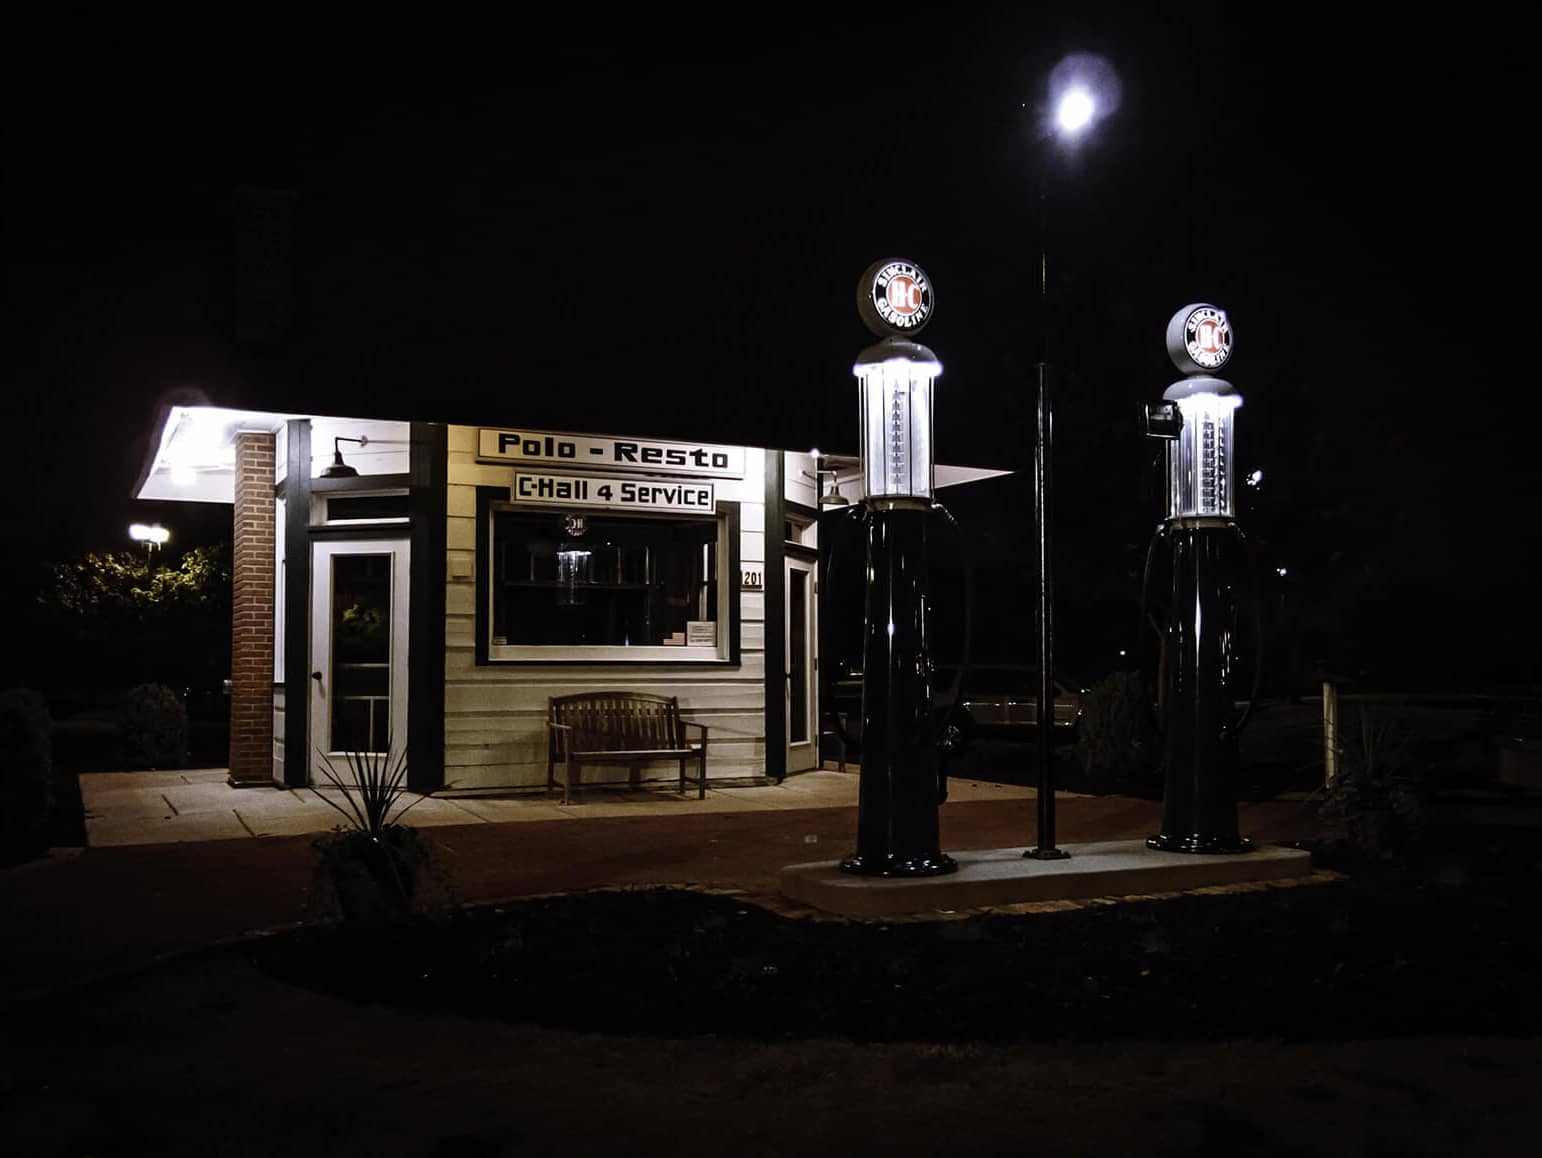 Service station night shot at Voyageur Park in De Pere, Wisconsin